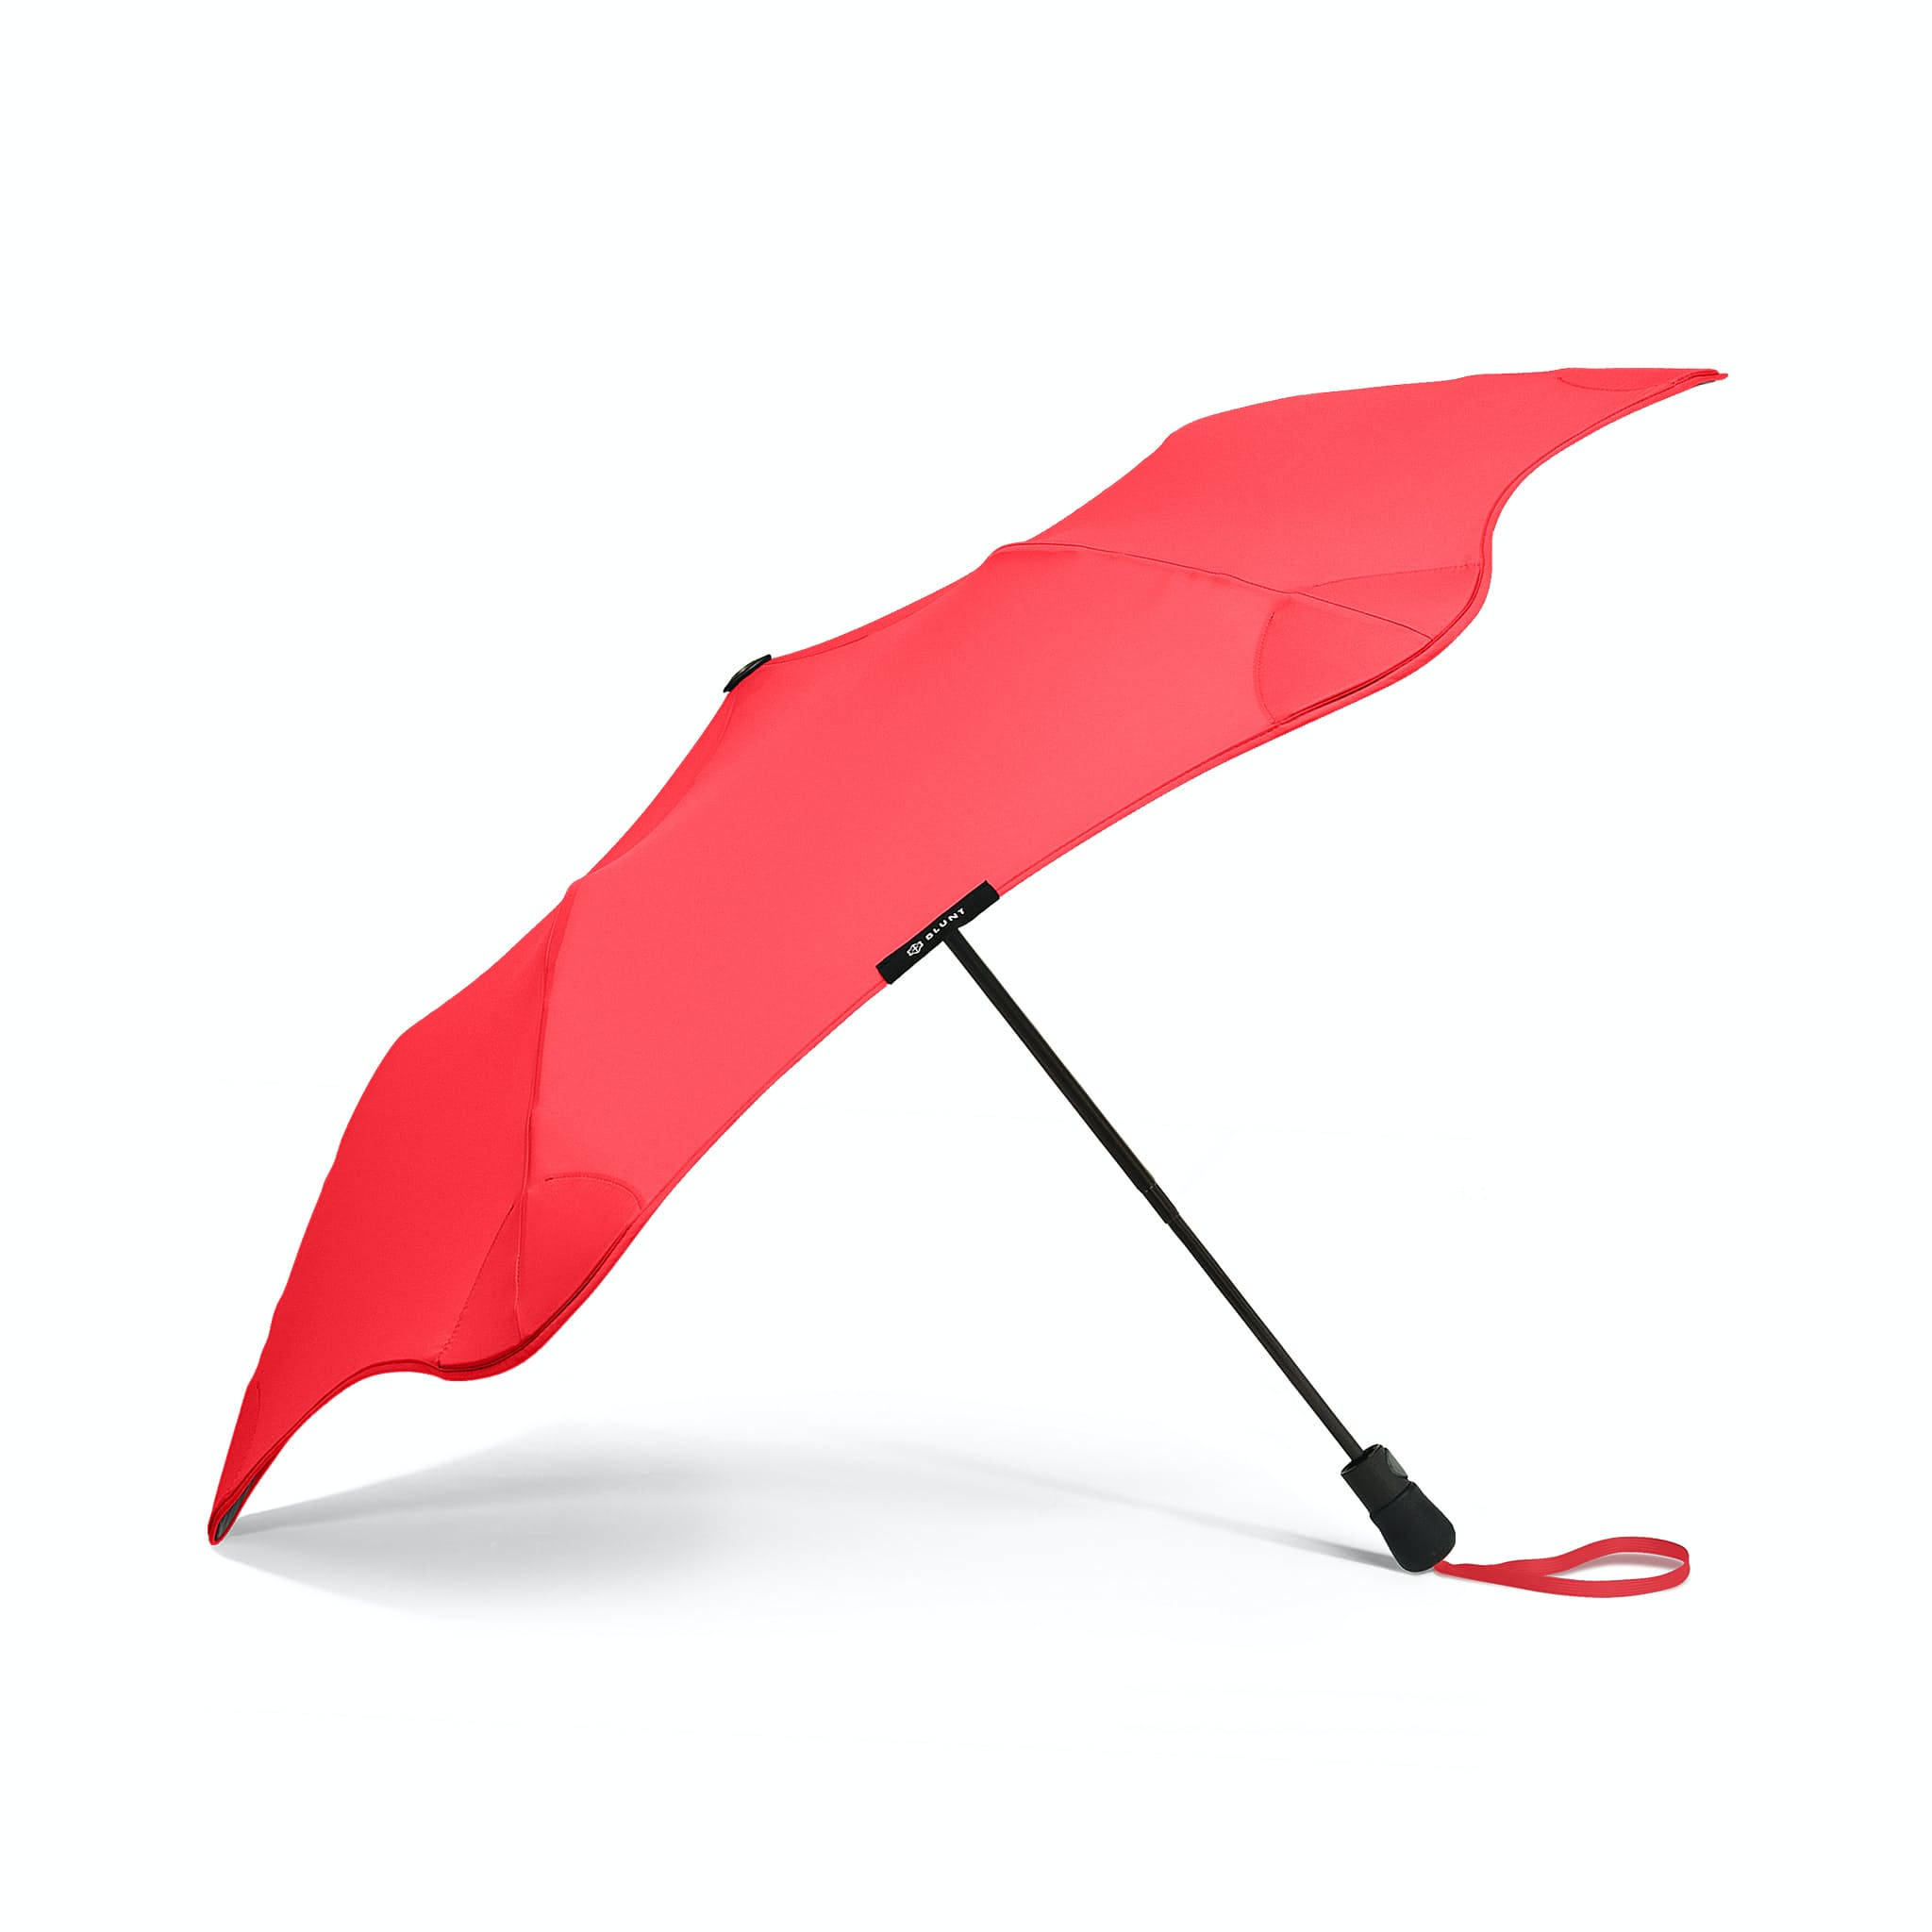 Wlwjo6jfh0 blunt umbrellas metro red 0 original